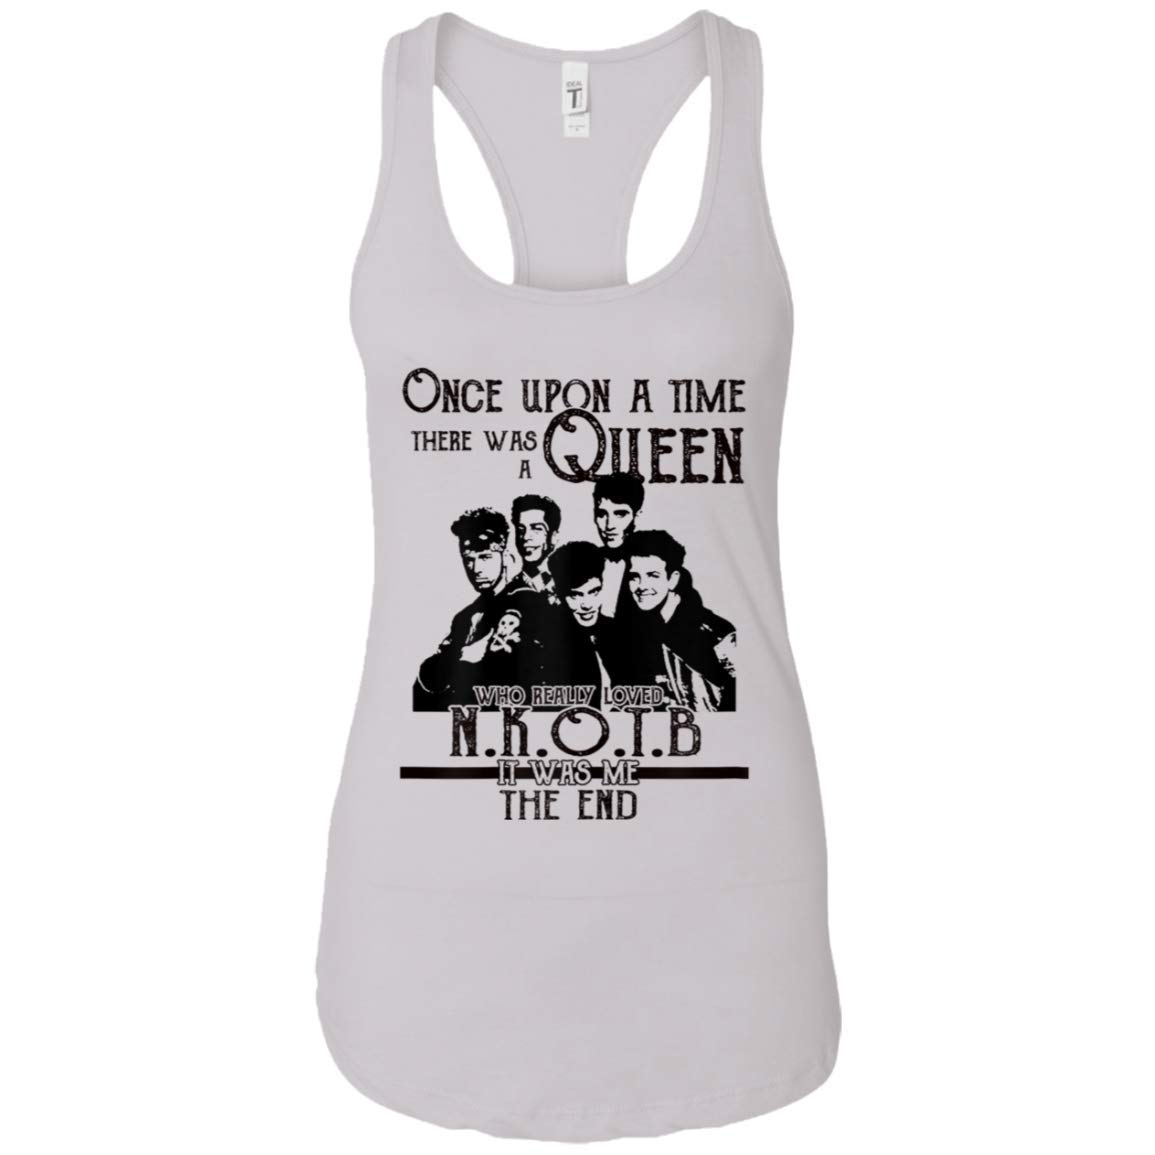 Vintage New On Block Shirt Once Upon A Time Racerback Tank Top For 2175